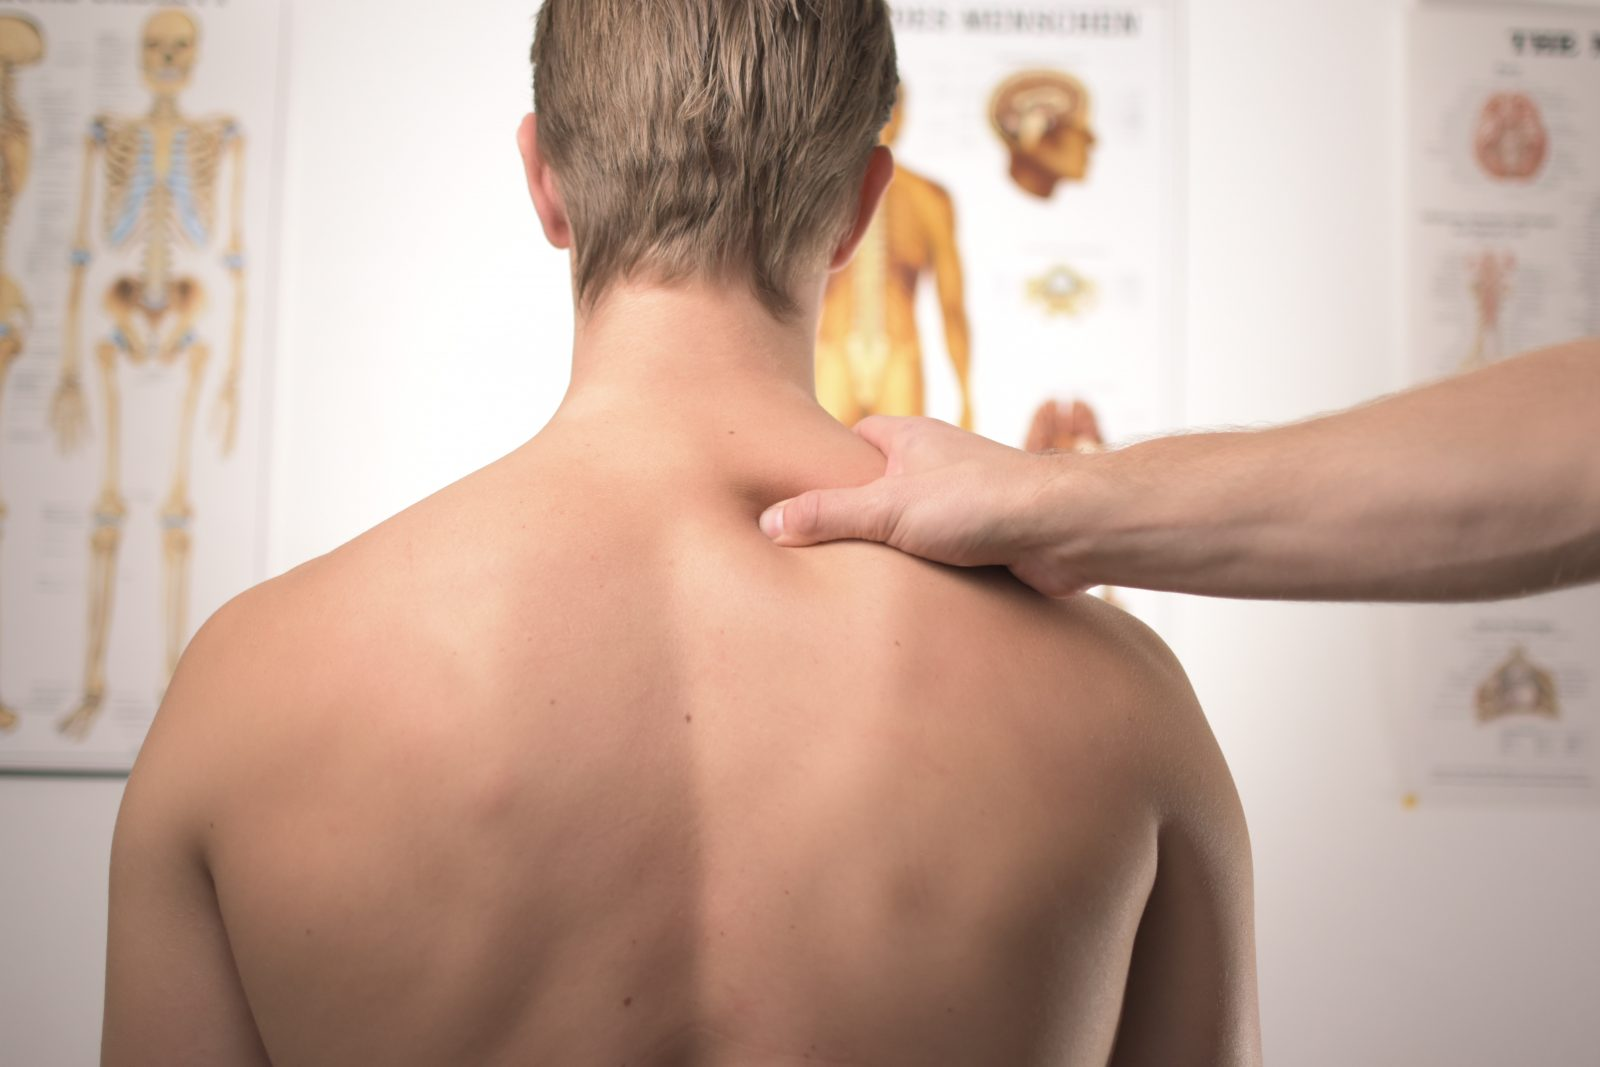 a shirtless blonde man with his back being massaged